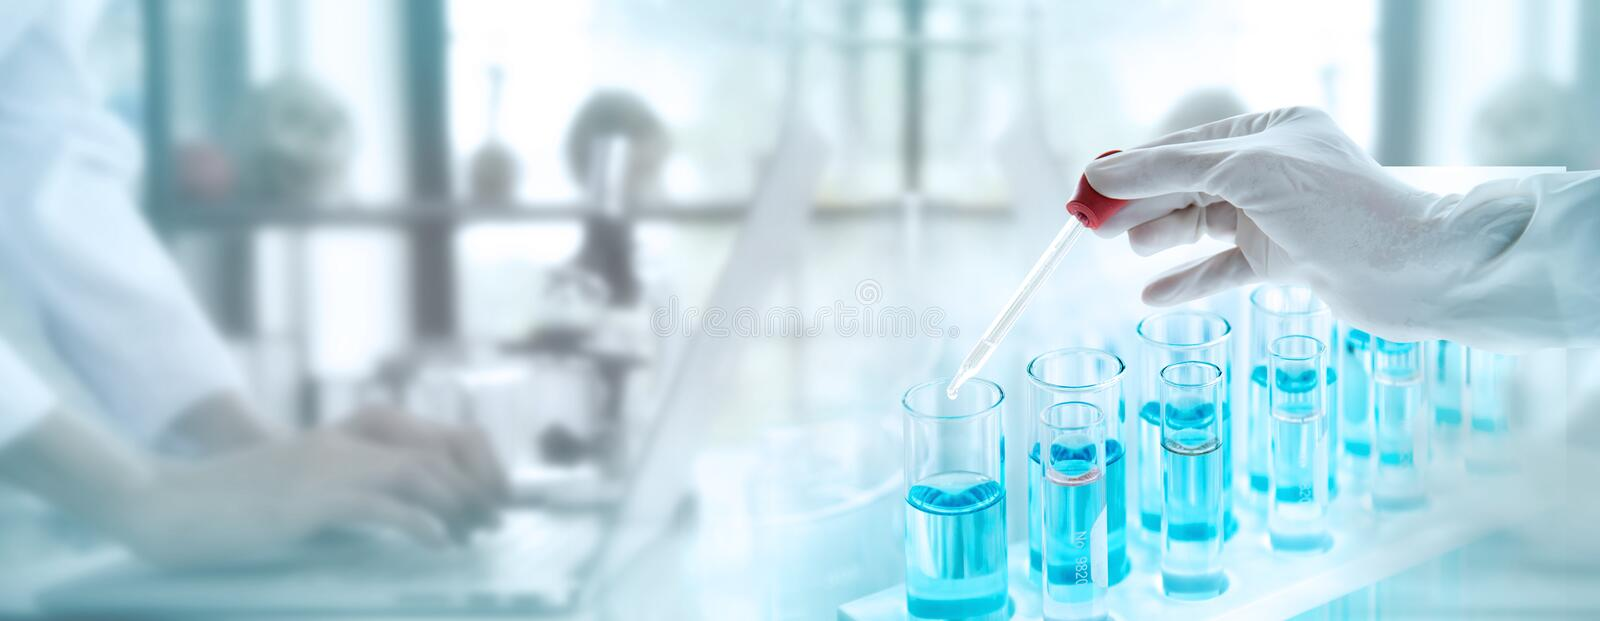 Test tubes with liquid in laboratory, Doctor hand holding dropper with dripping transparent glass pipette. scientist working with royalty free stock photo